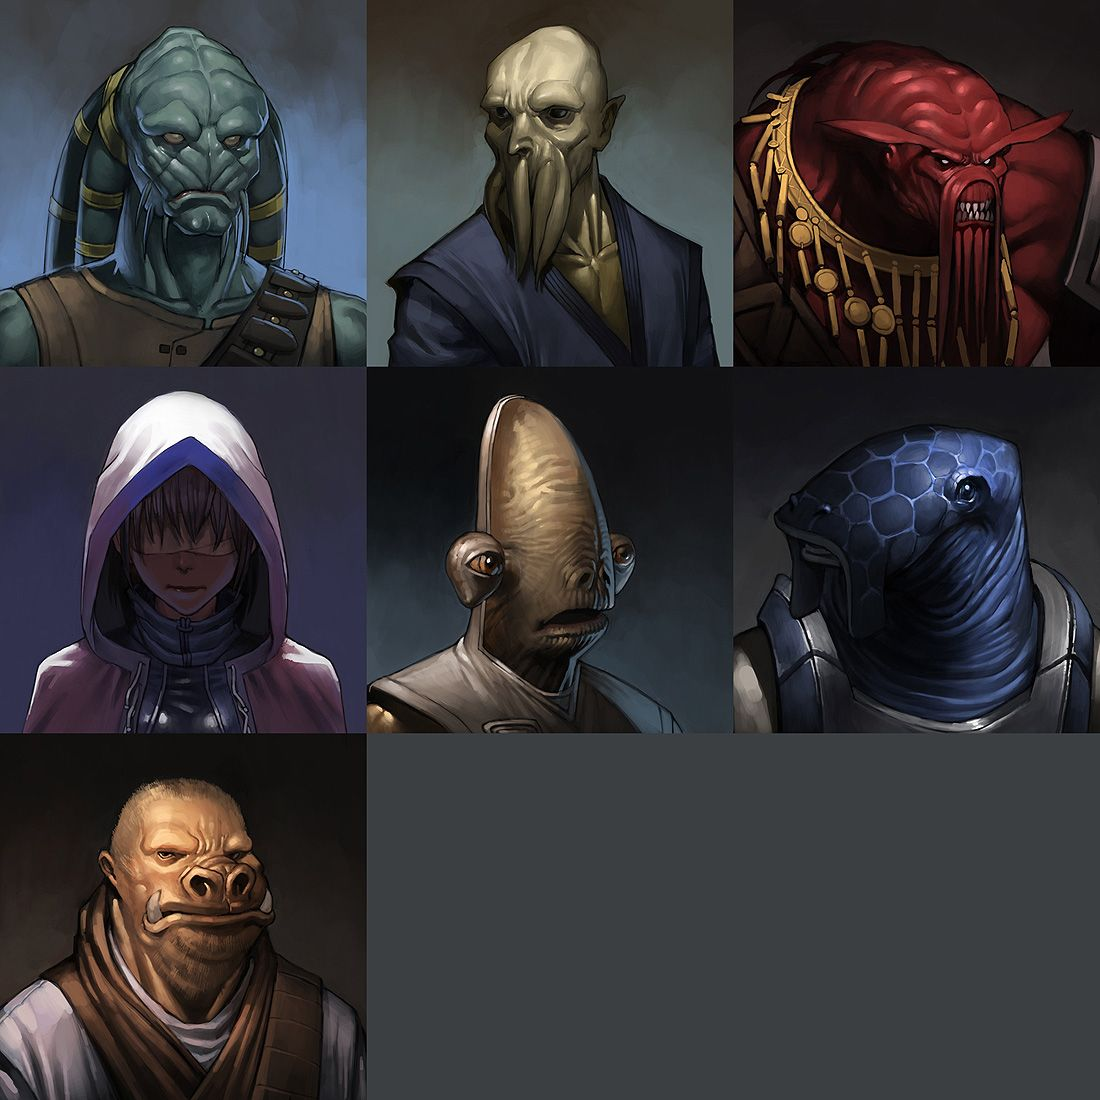 Kotor Races By Udoncrew On Deviantart Star Wars Characters Pictures Star Wars Species Star Wars Images